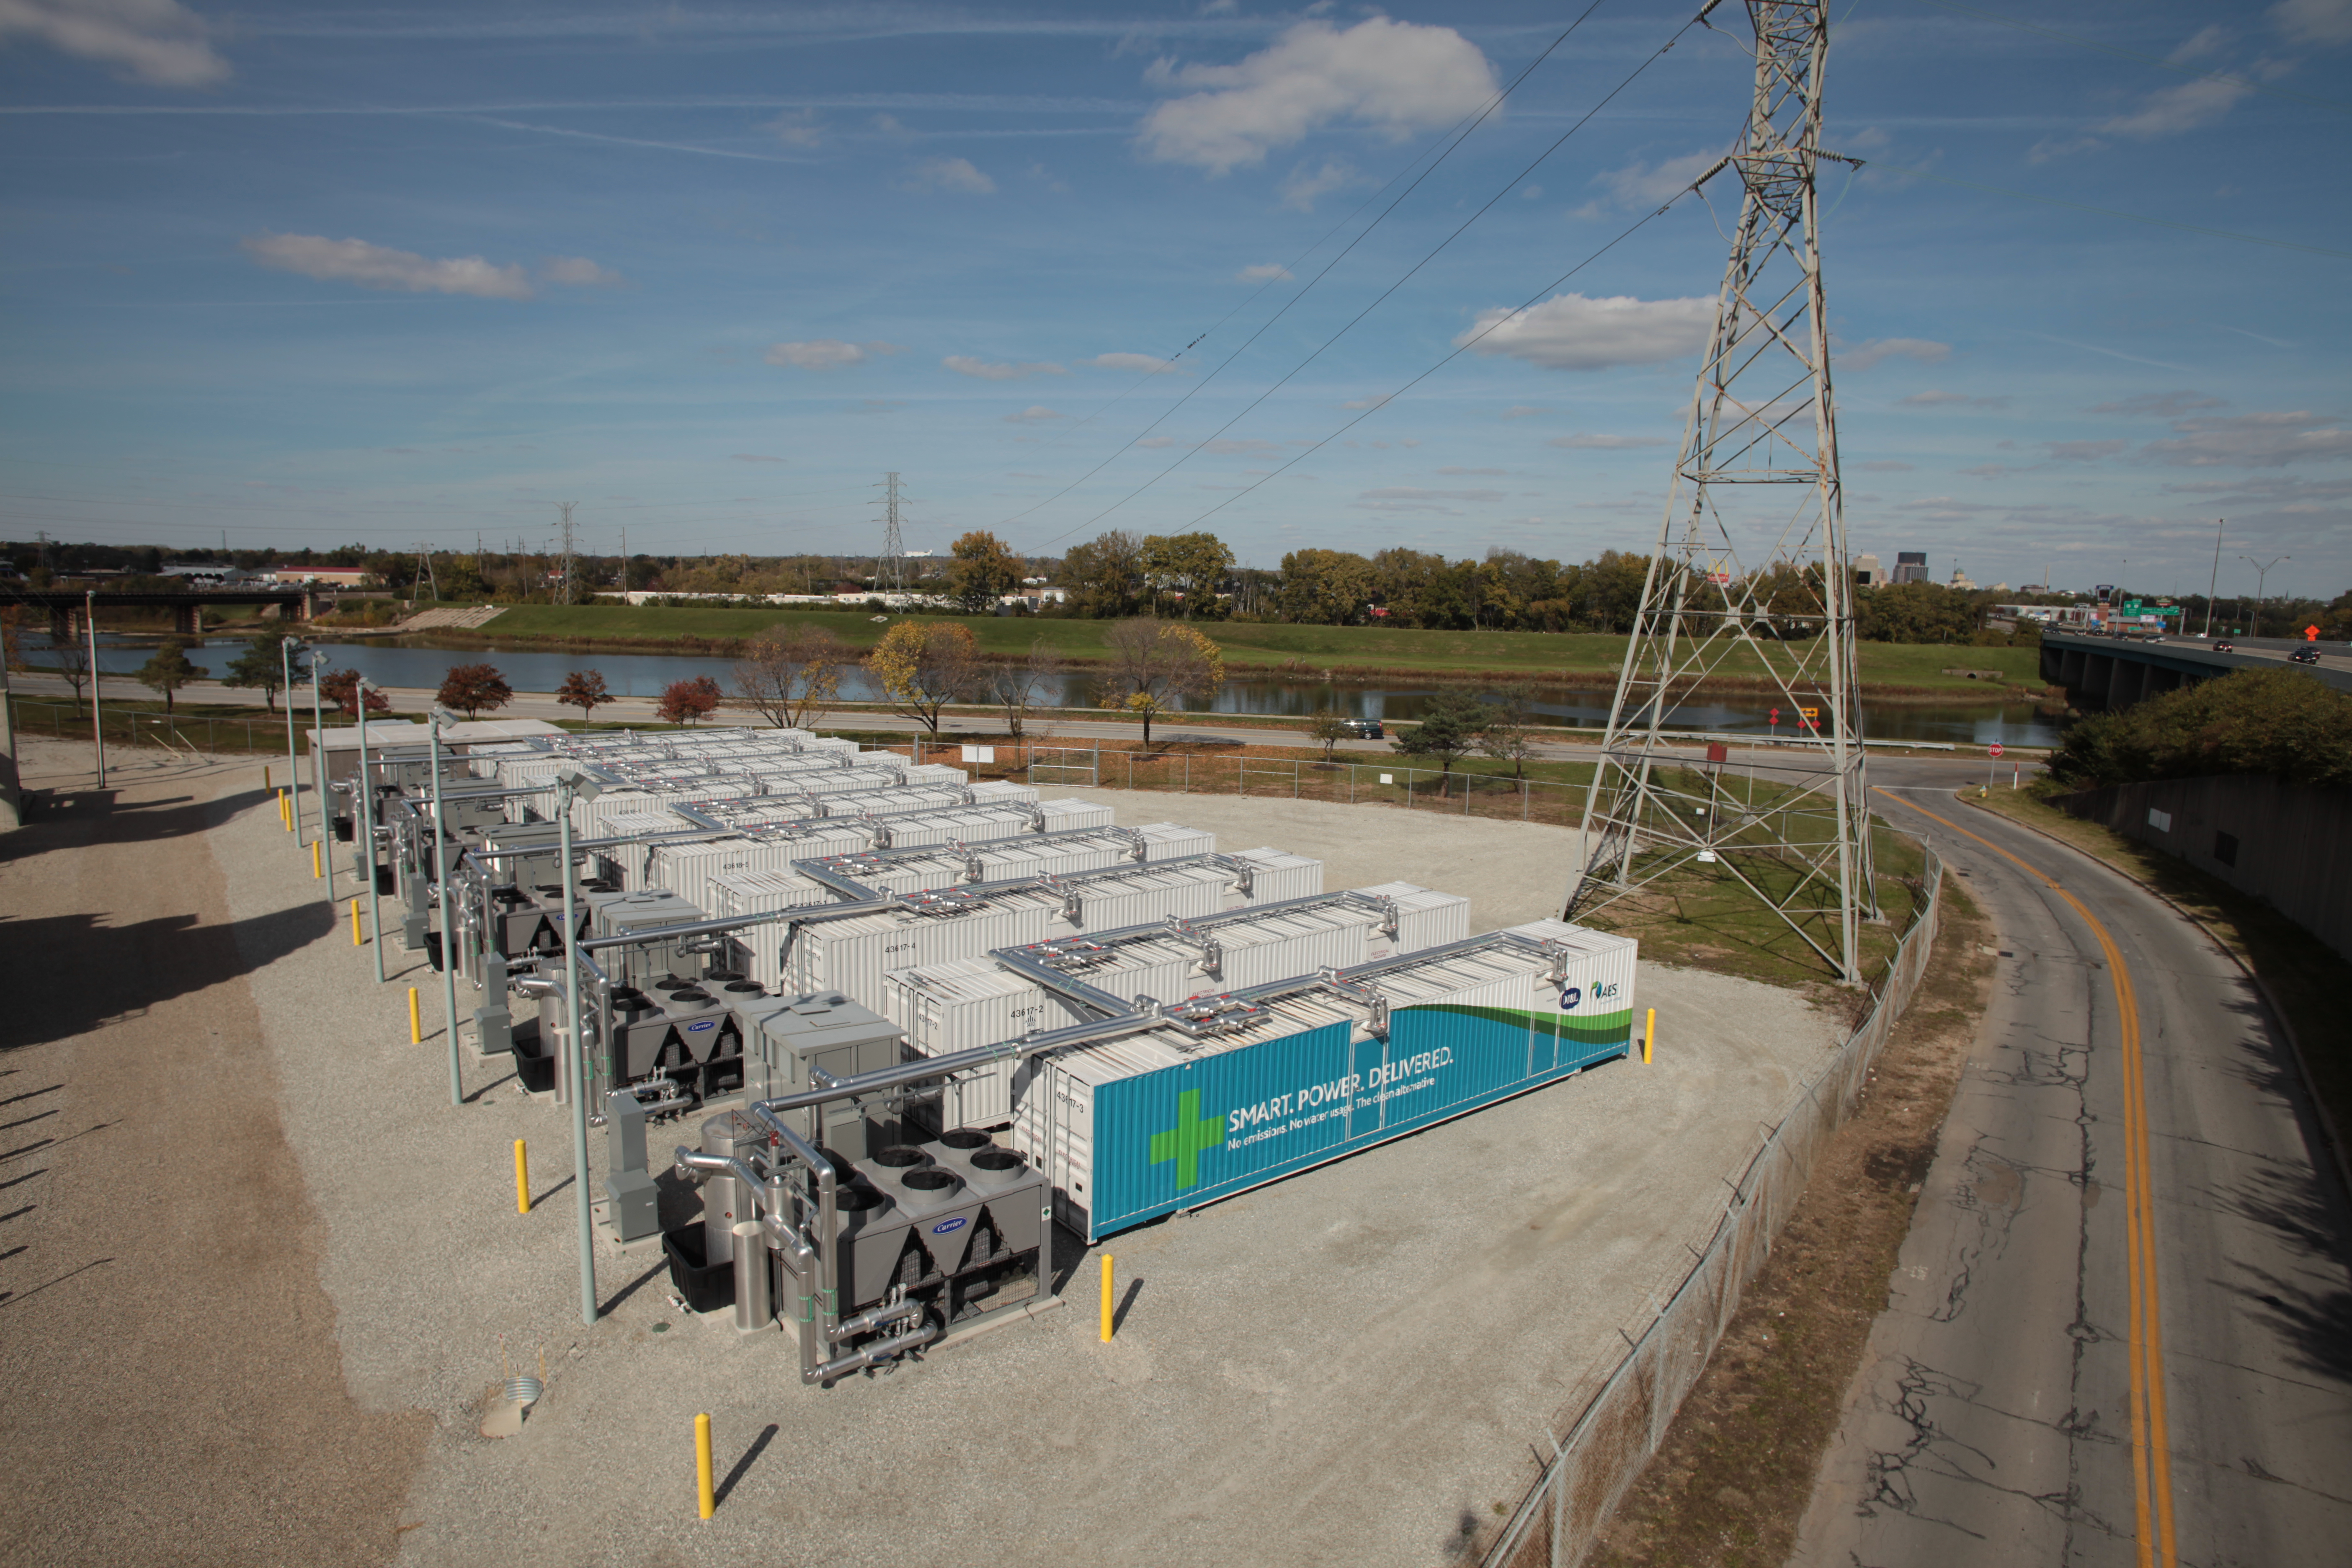 A 40 MW battery farm  at Dayton Power and Light's (DP&L) Tait generating station, just south of Dayton, Ohio, built by AES Energy Storage.